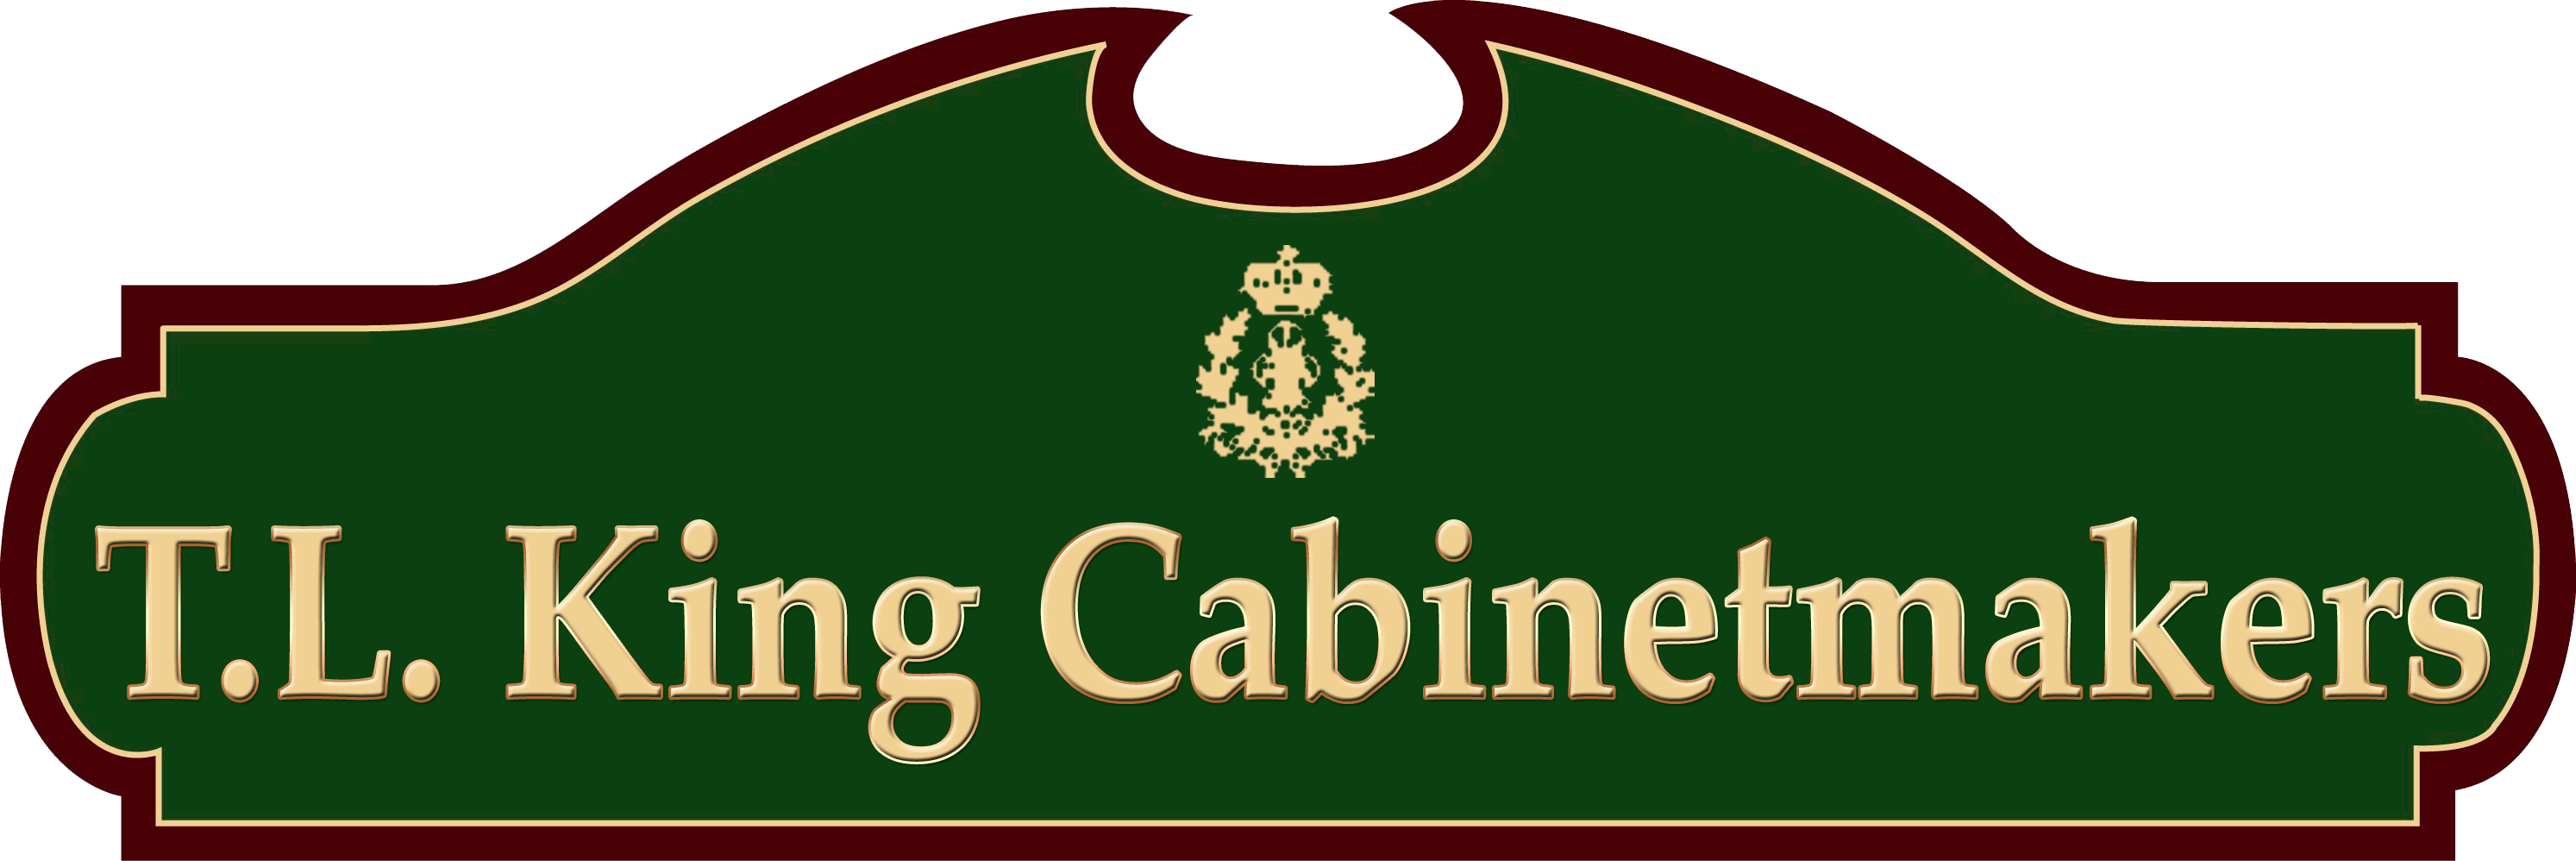 Custom Cabinet Makers For Philadelphia PA | T. L. King Cabinetmakers